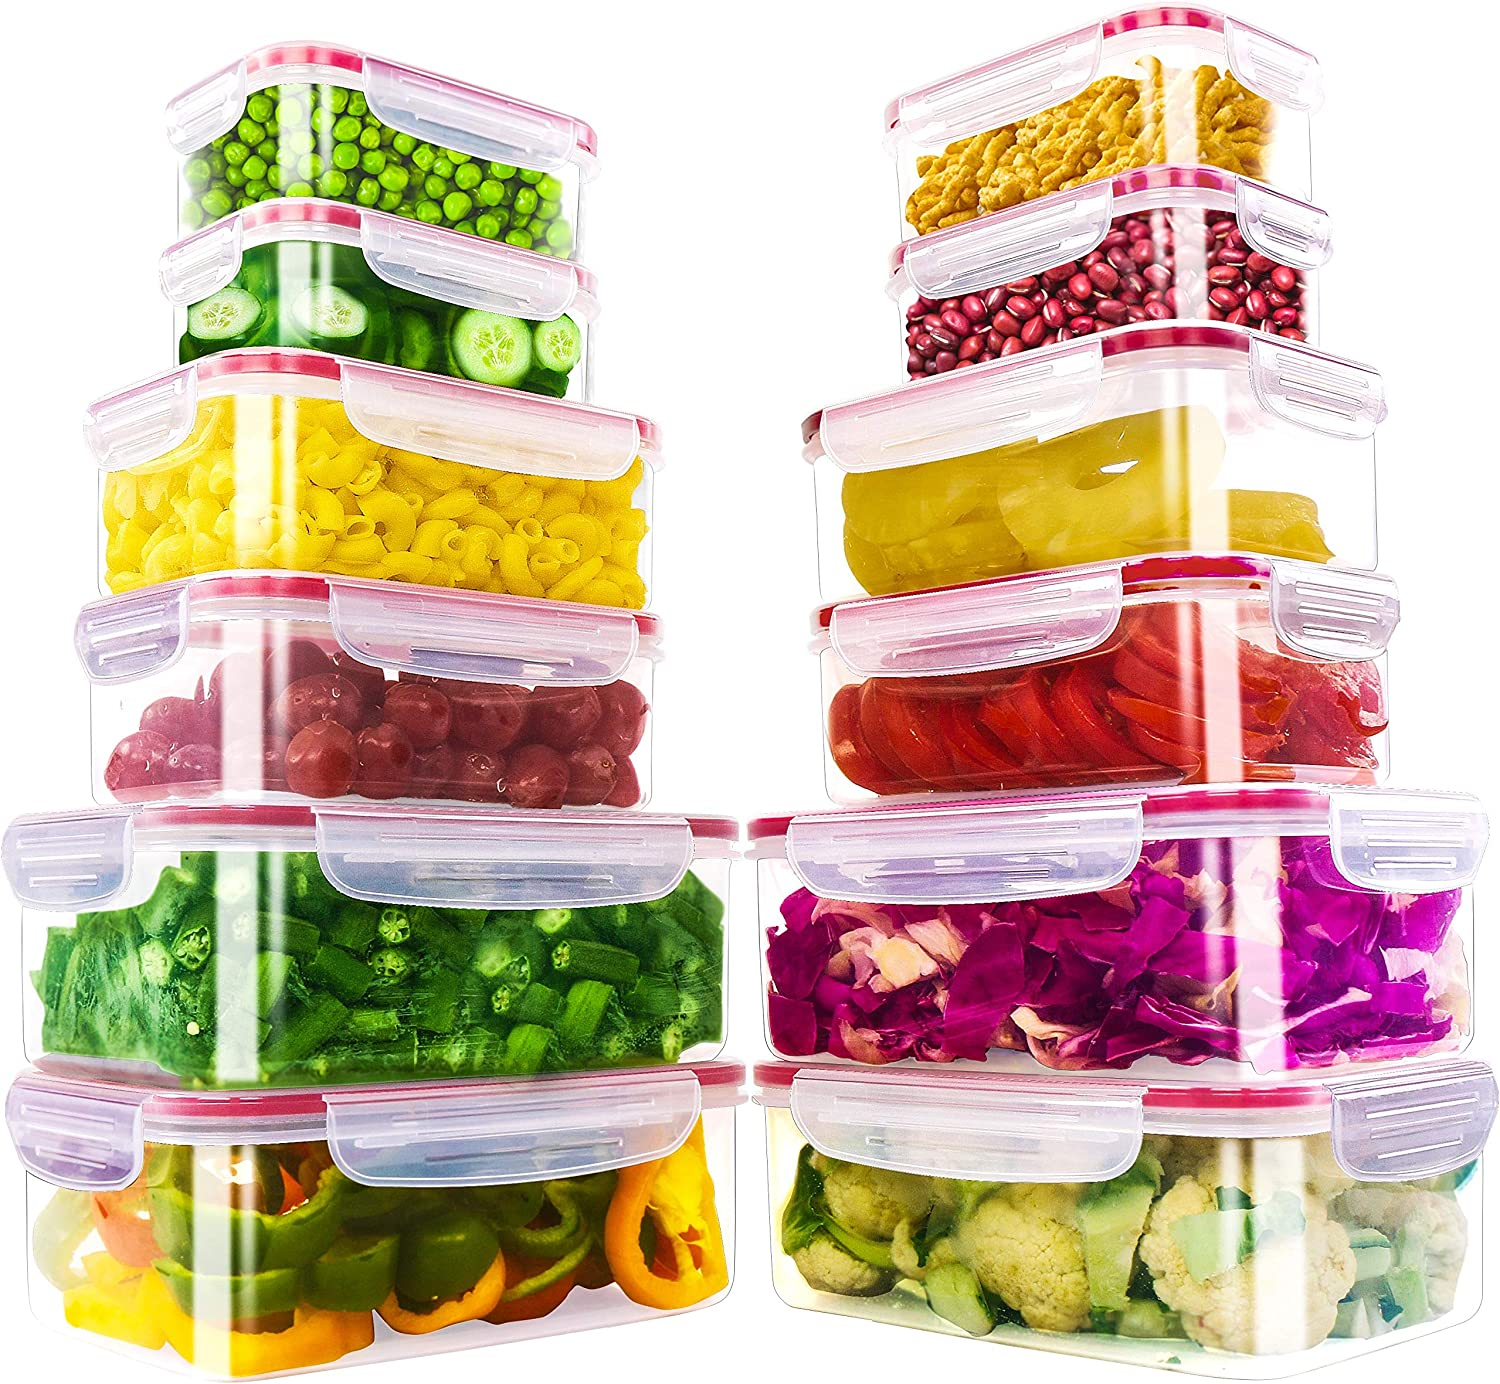 Utopia Kitchen 24 Piece Plastic Food Containers Set [ 12 Containers & 12 Lids ] with Airtight Lids-Freezer & Microwave Safe, BPA Free, Leak proof Lunch Containers